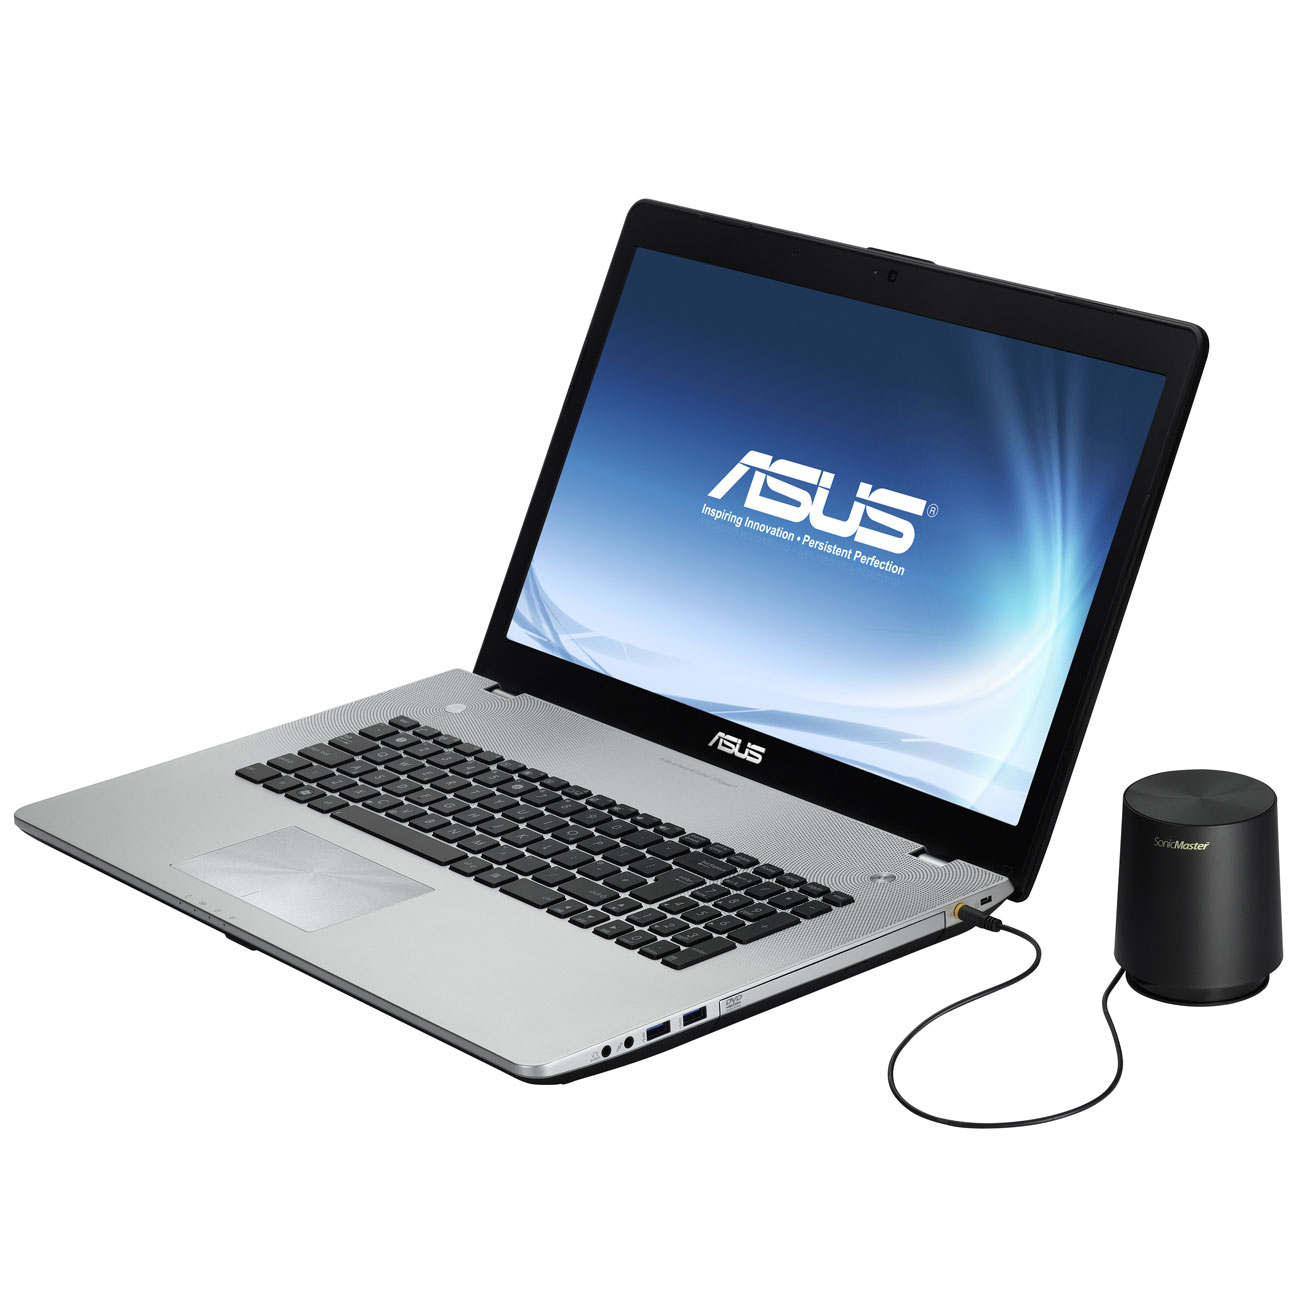 asus n76vz v2g t1101v pc portable asus sur ldlc. Black Bedroom Furniture Sets. Home Design Ideas